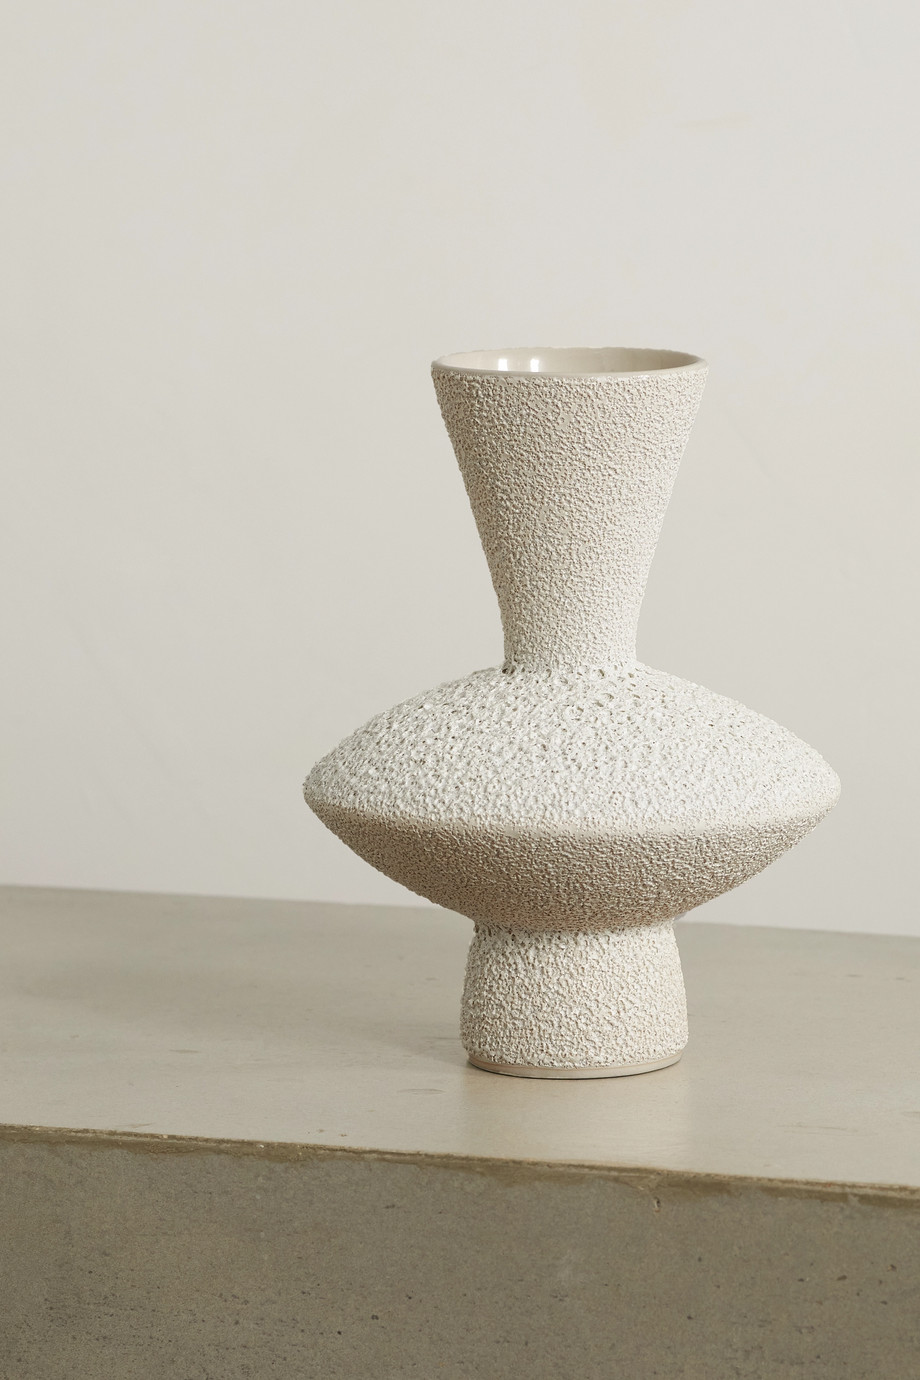 MARLOE MARLOE Stevie glazed ceramic vase